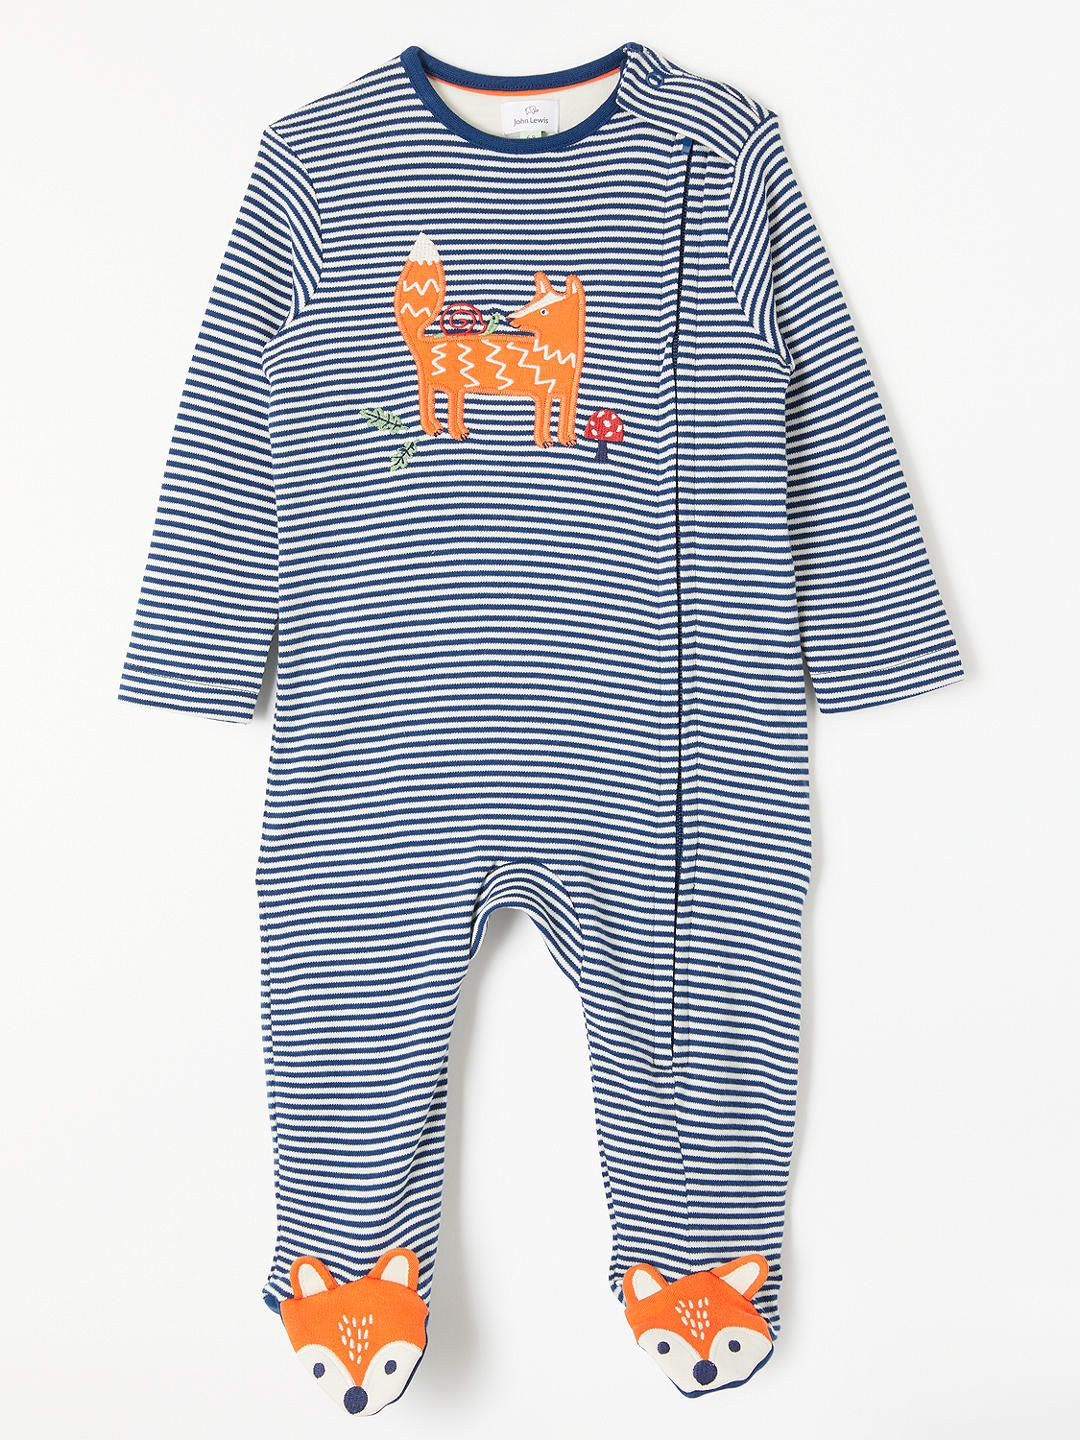 a4a7d01ee BuyJohn Lewis & Partners Baby Jersey GOTS Organic Cotton Fox Zip Sleepsuit,  Blue, Tiny Baby Online at johnlewis.com